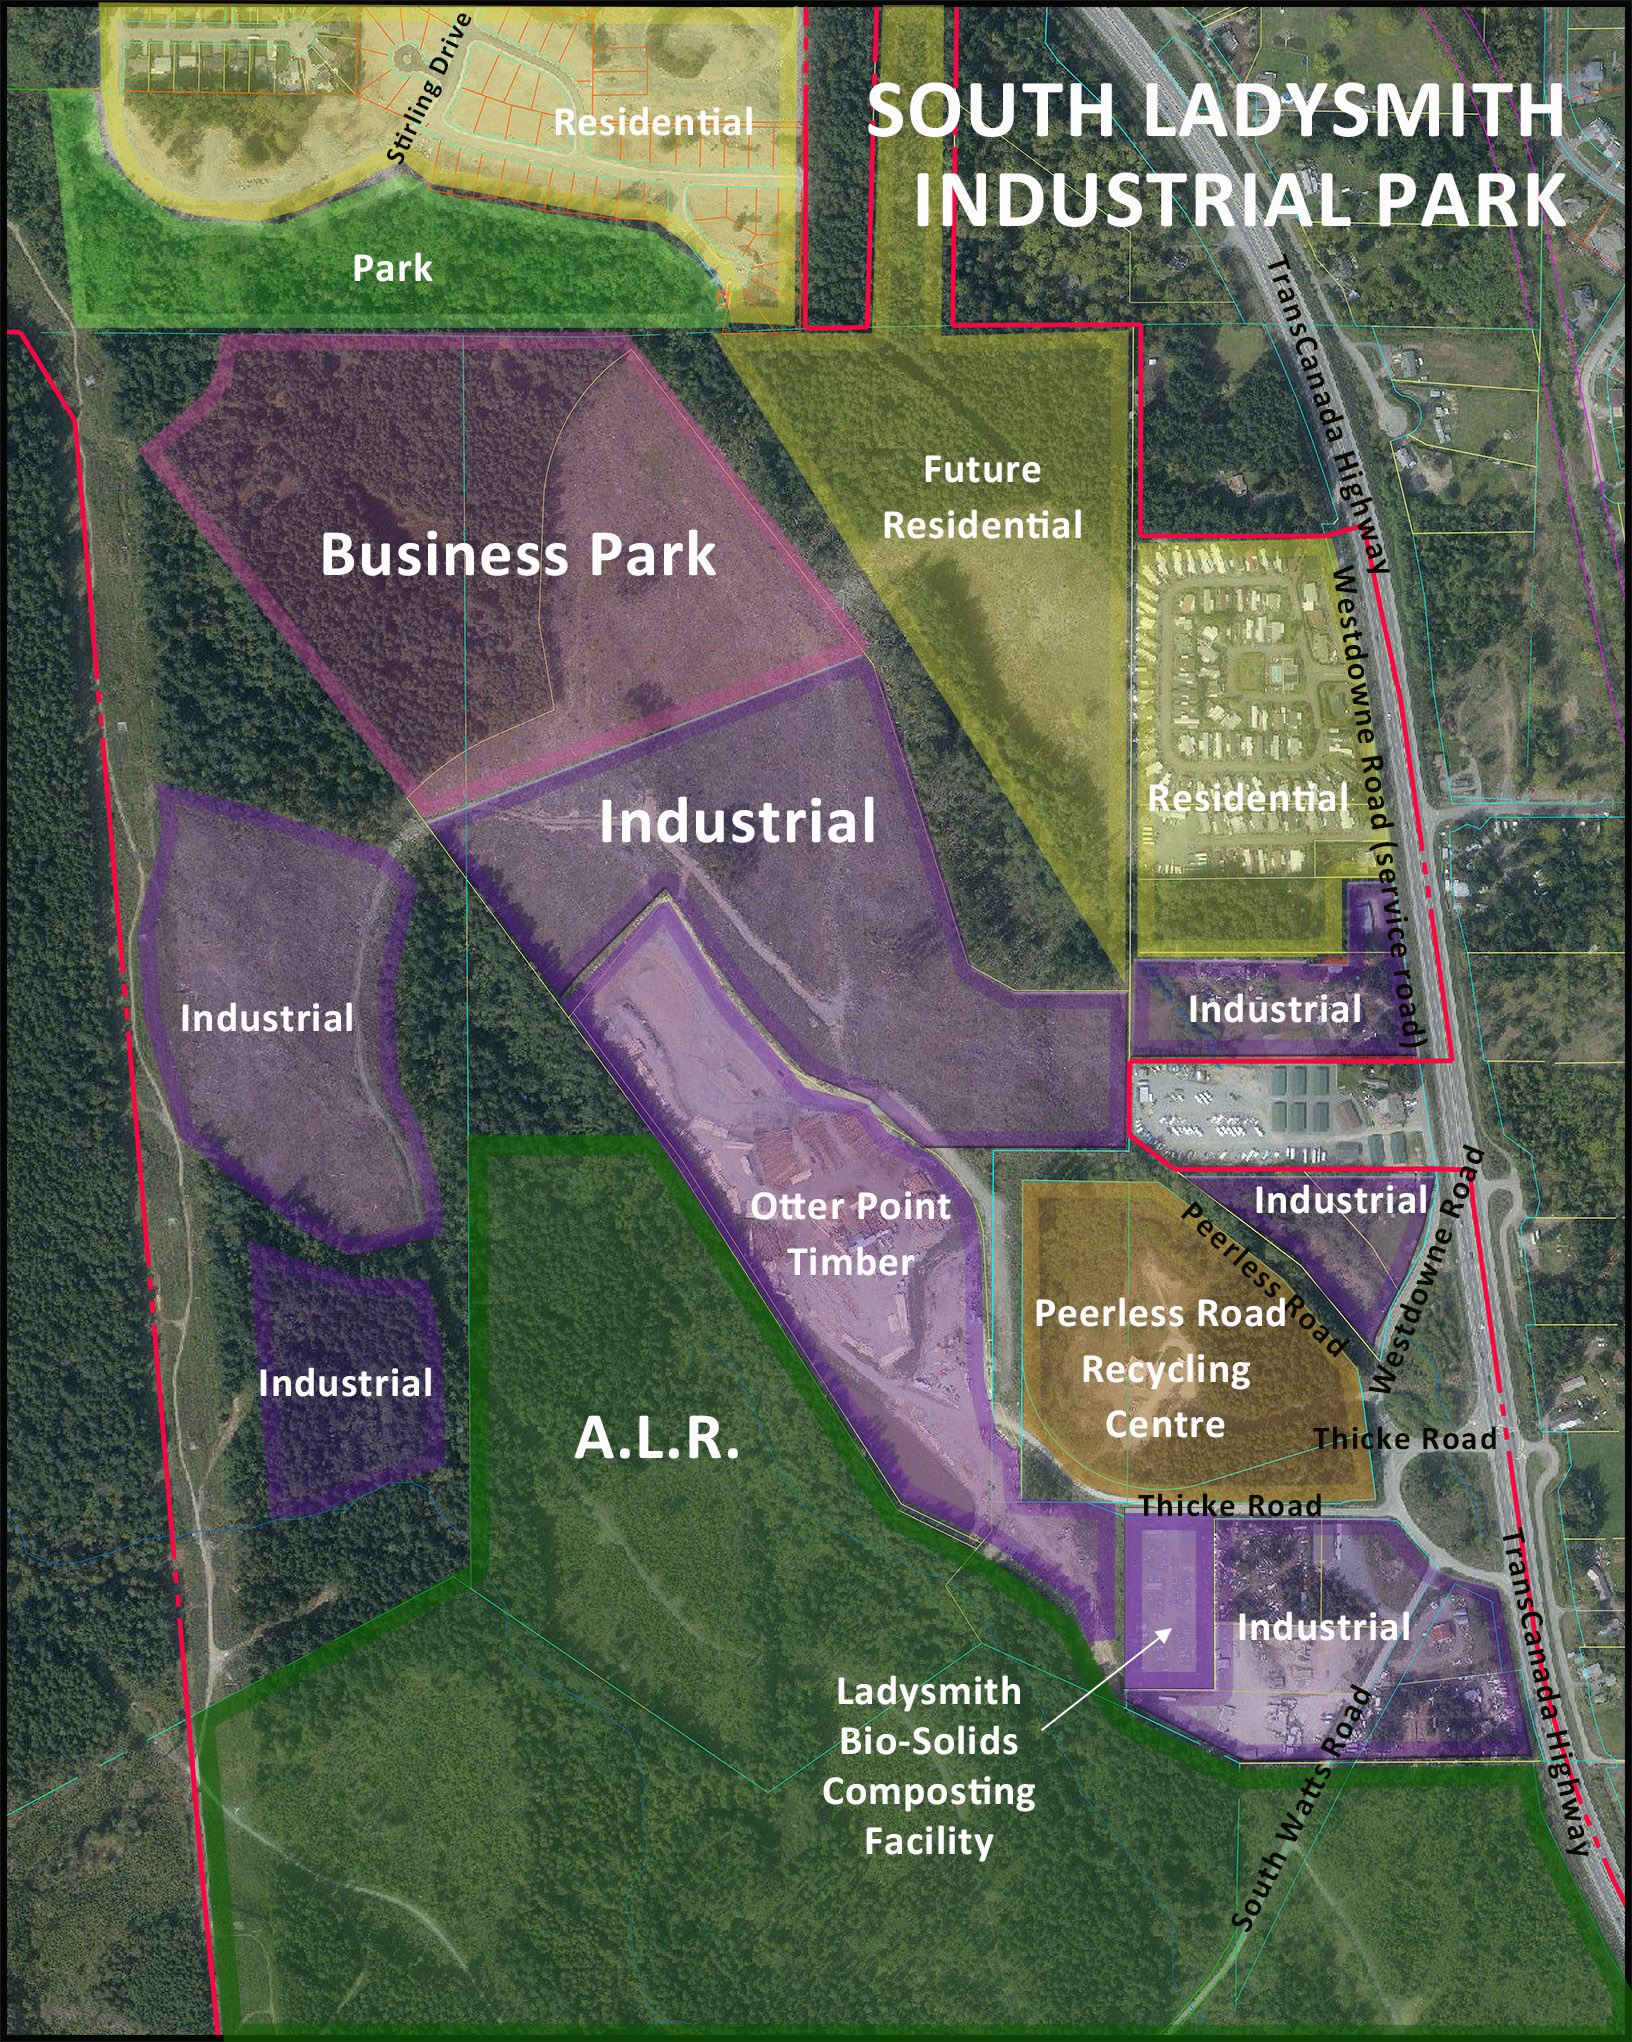 South Ladysmith Industrial Park_ed with bio solids